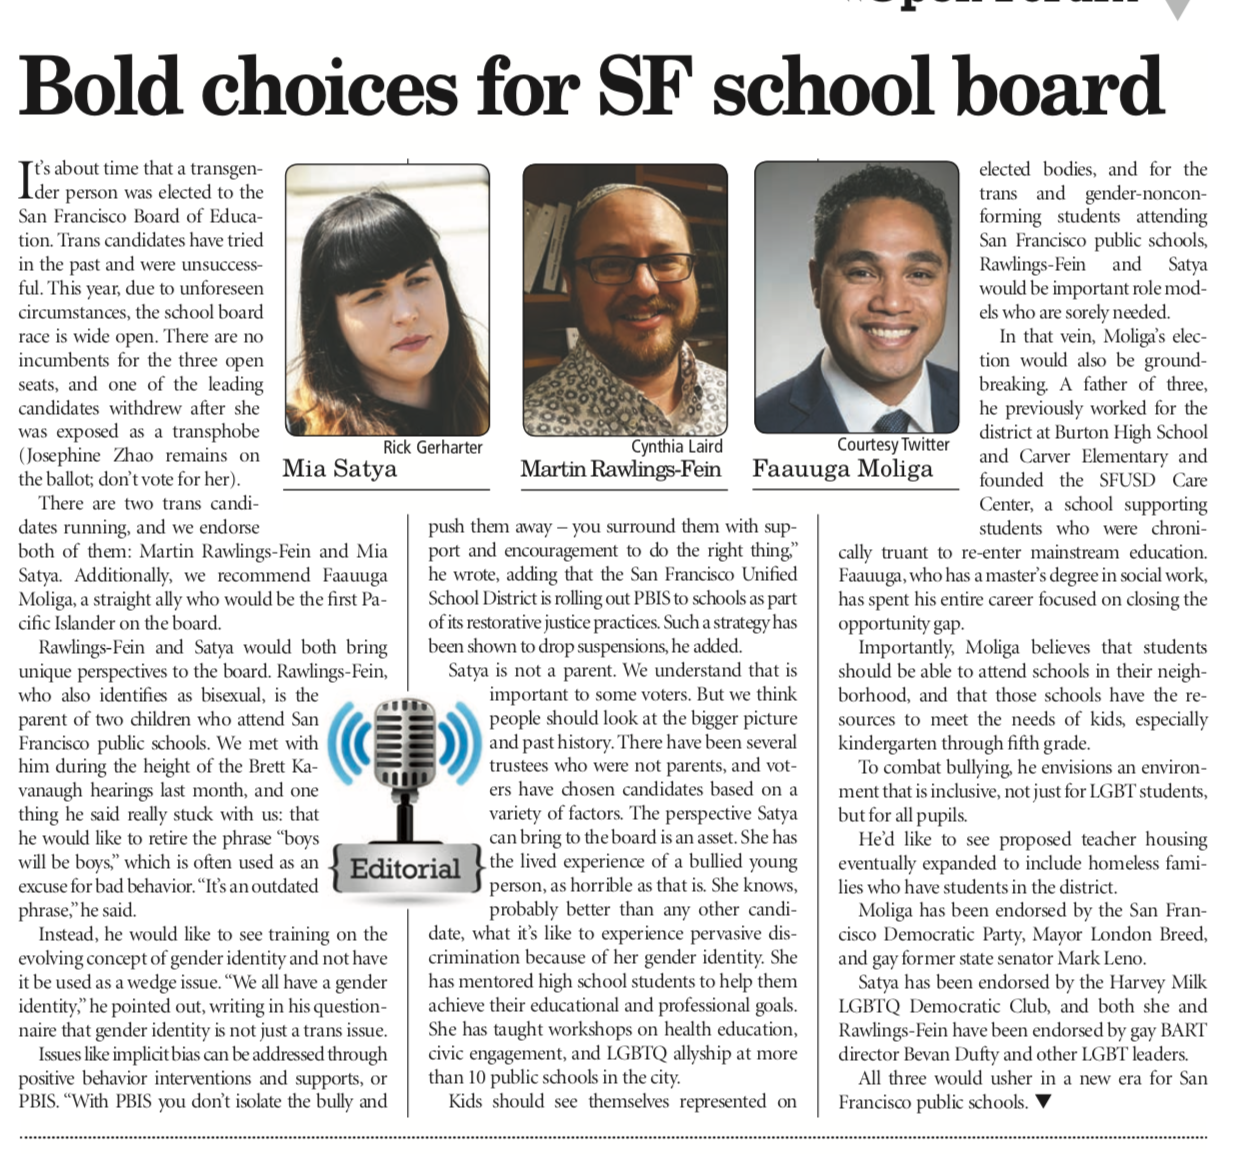 Editorial: Bold choices for SF school board